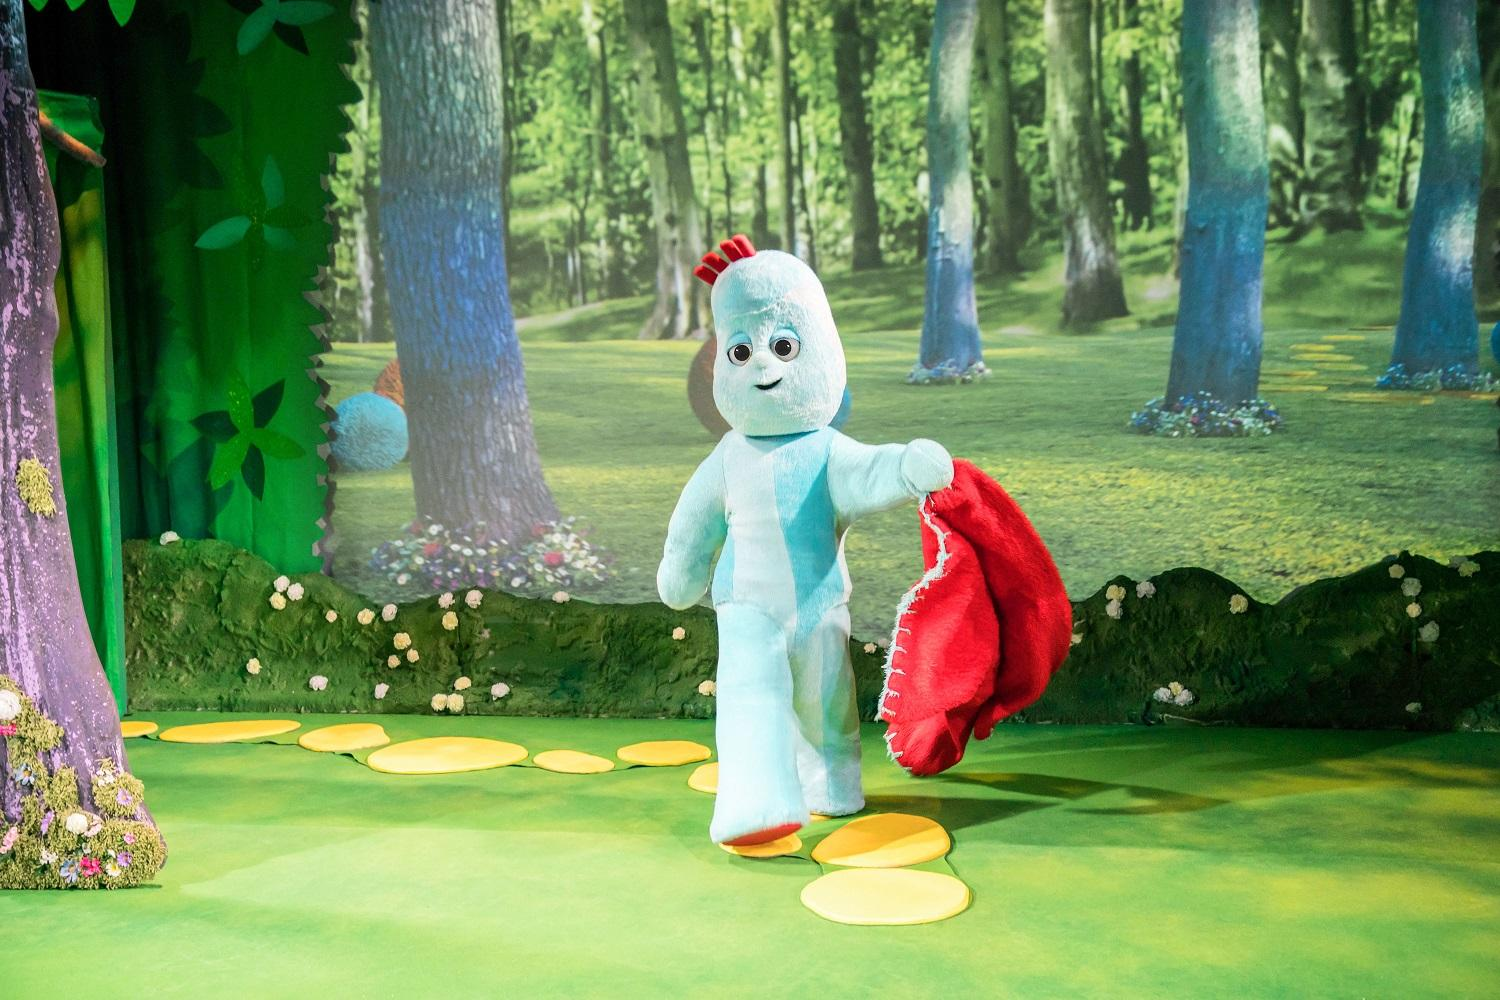 Image of Iggle Piggle walking through the night garden